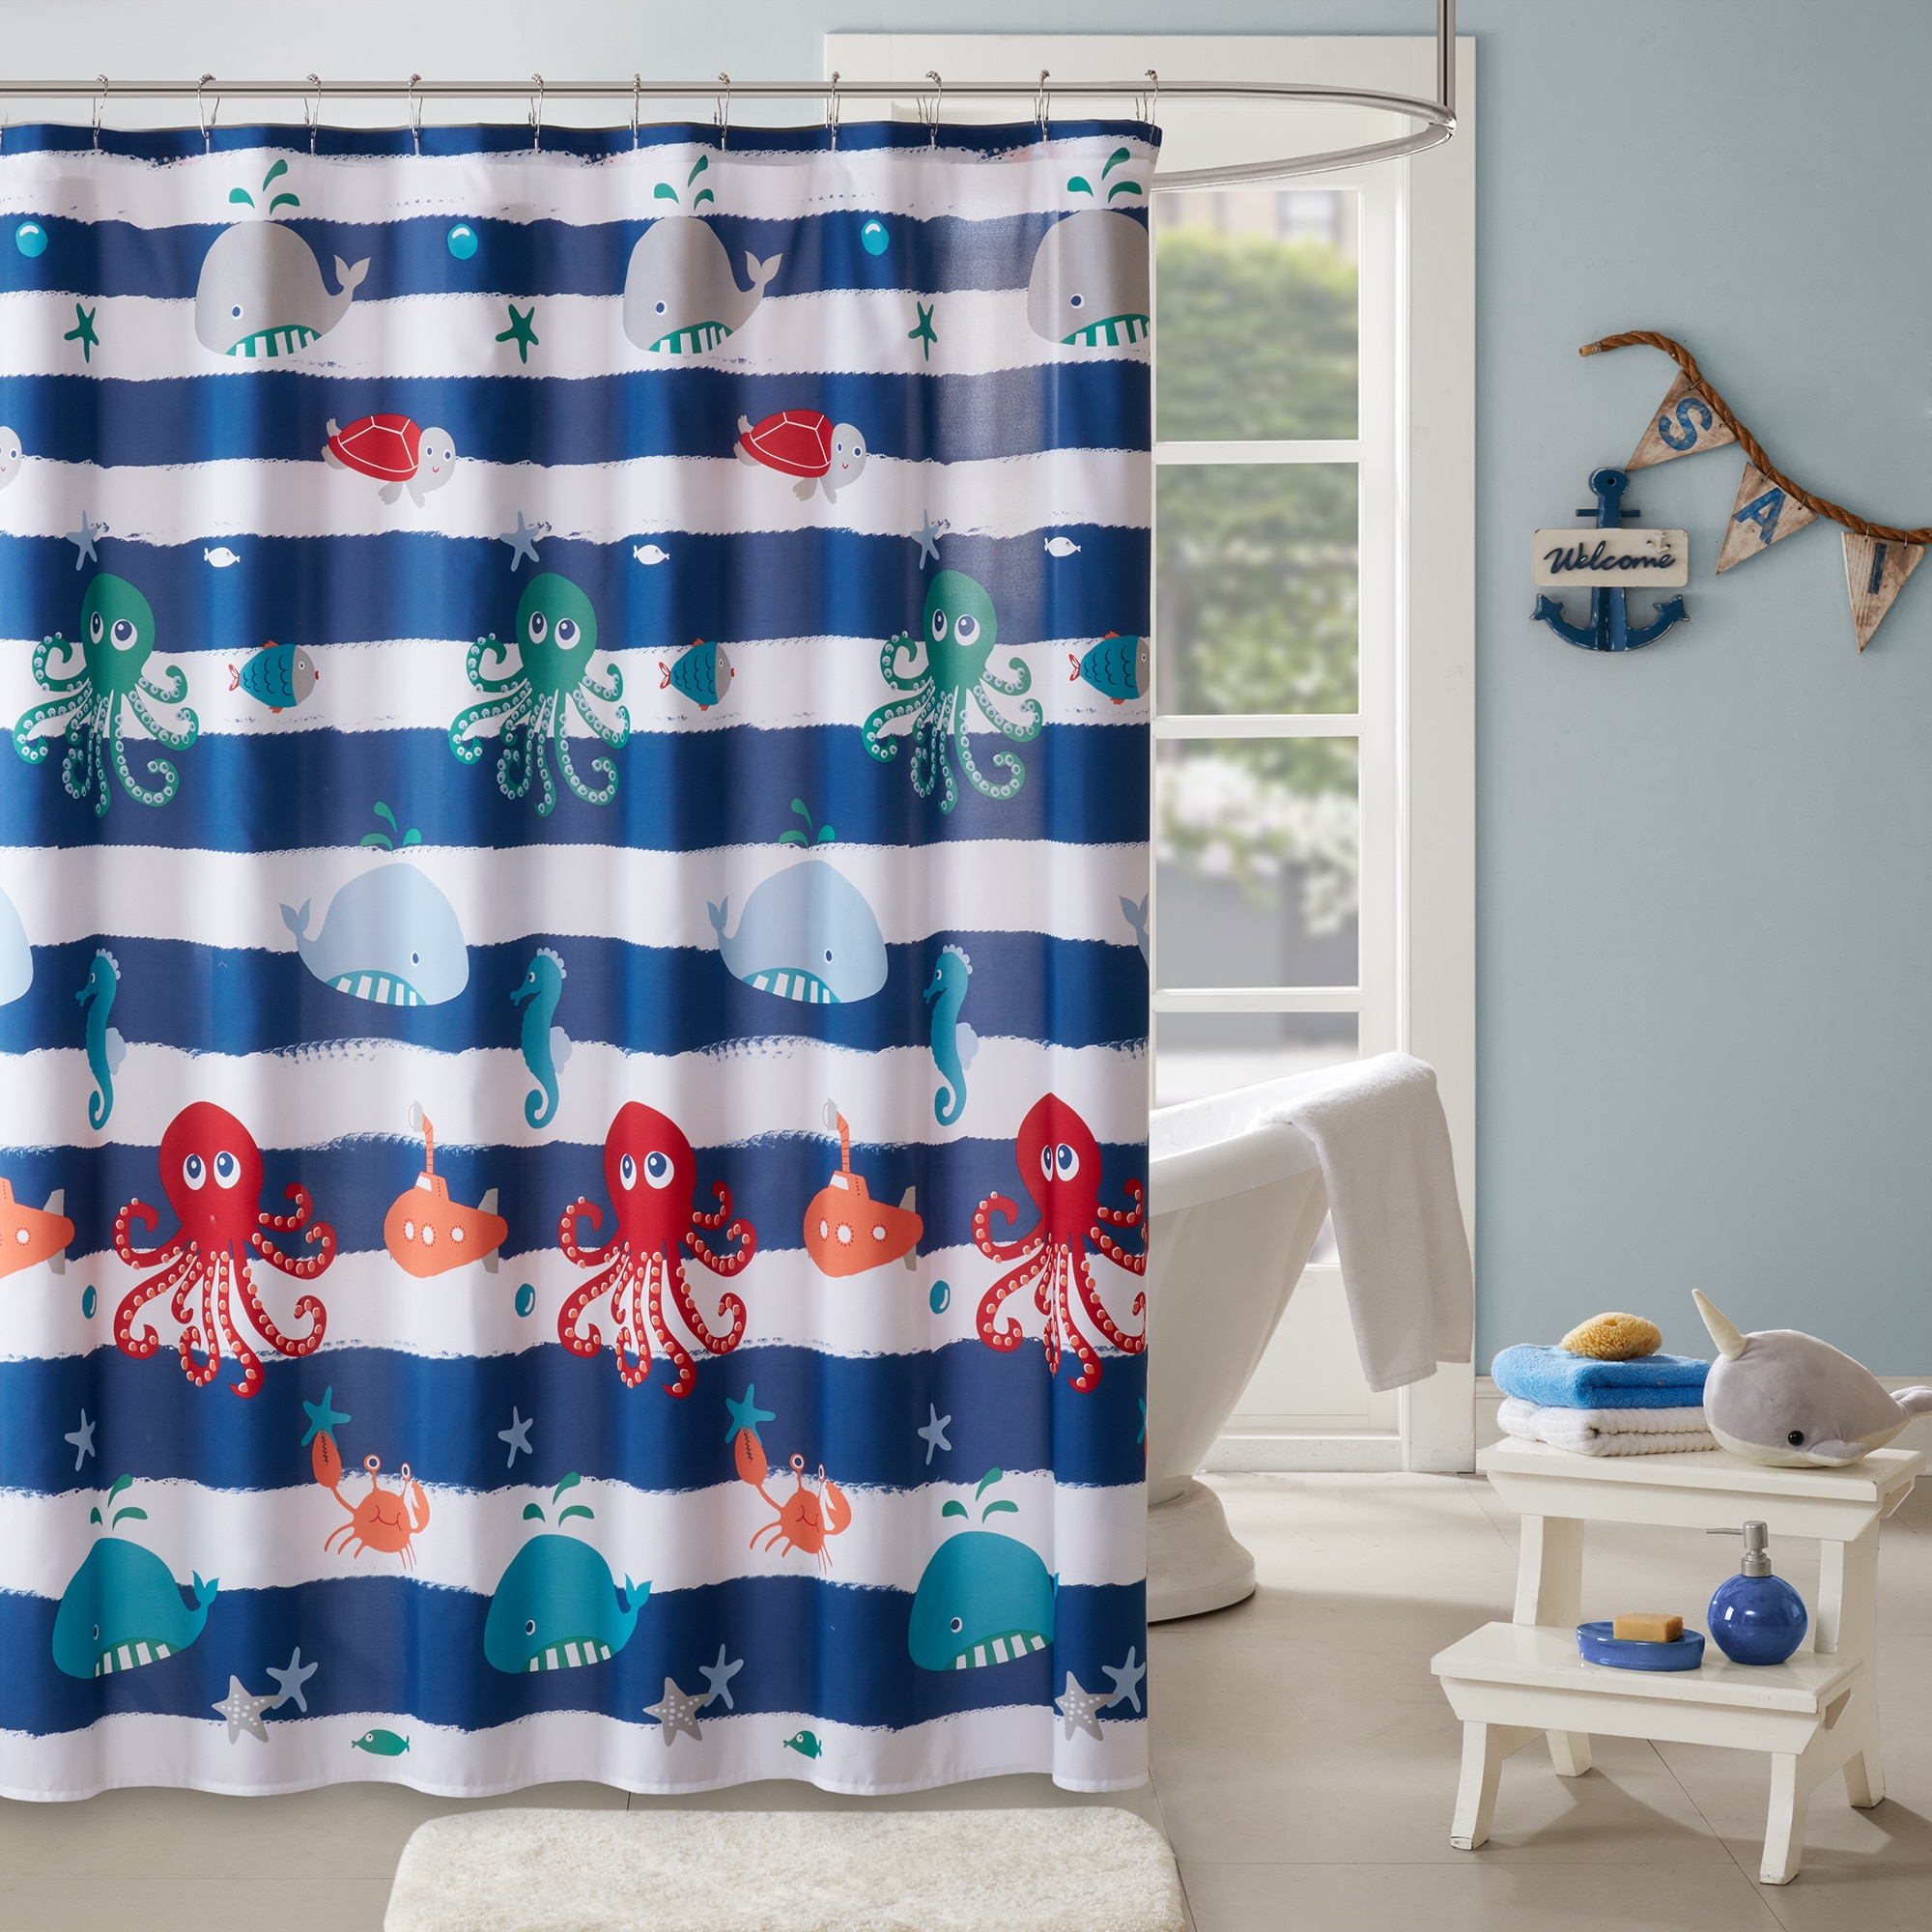 Home Essence Kids Walter the Whale Printed Shower Curtain by E&E Co.Ltd